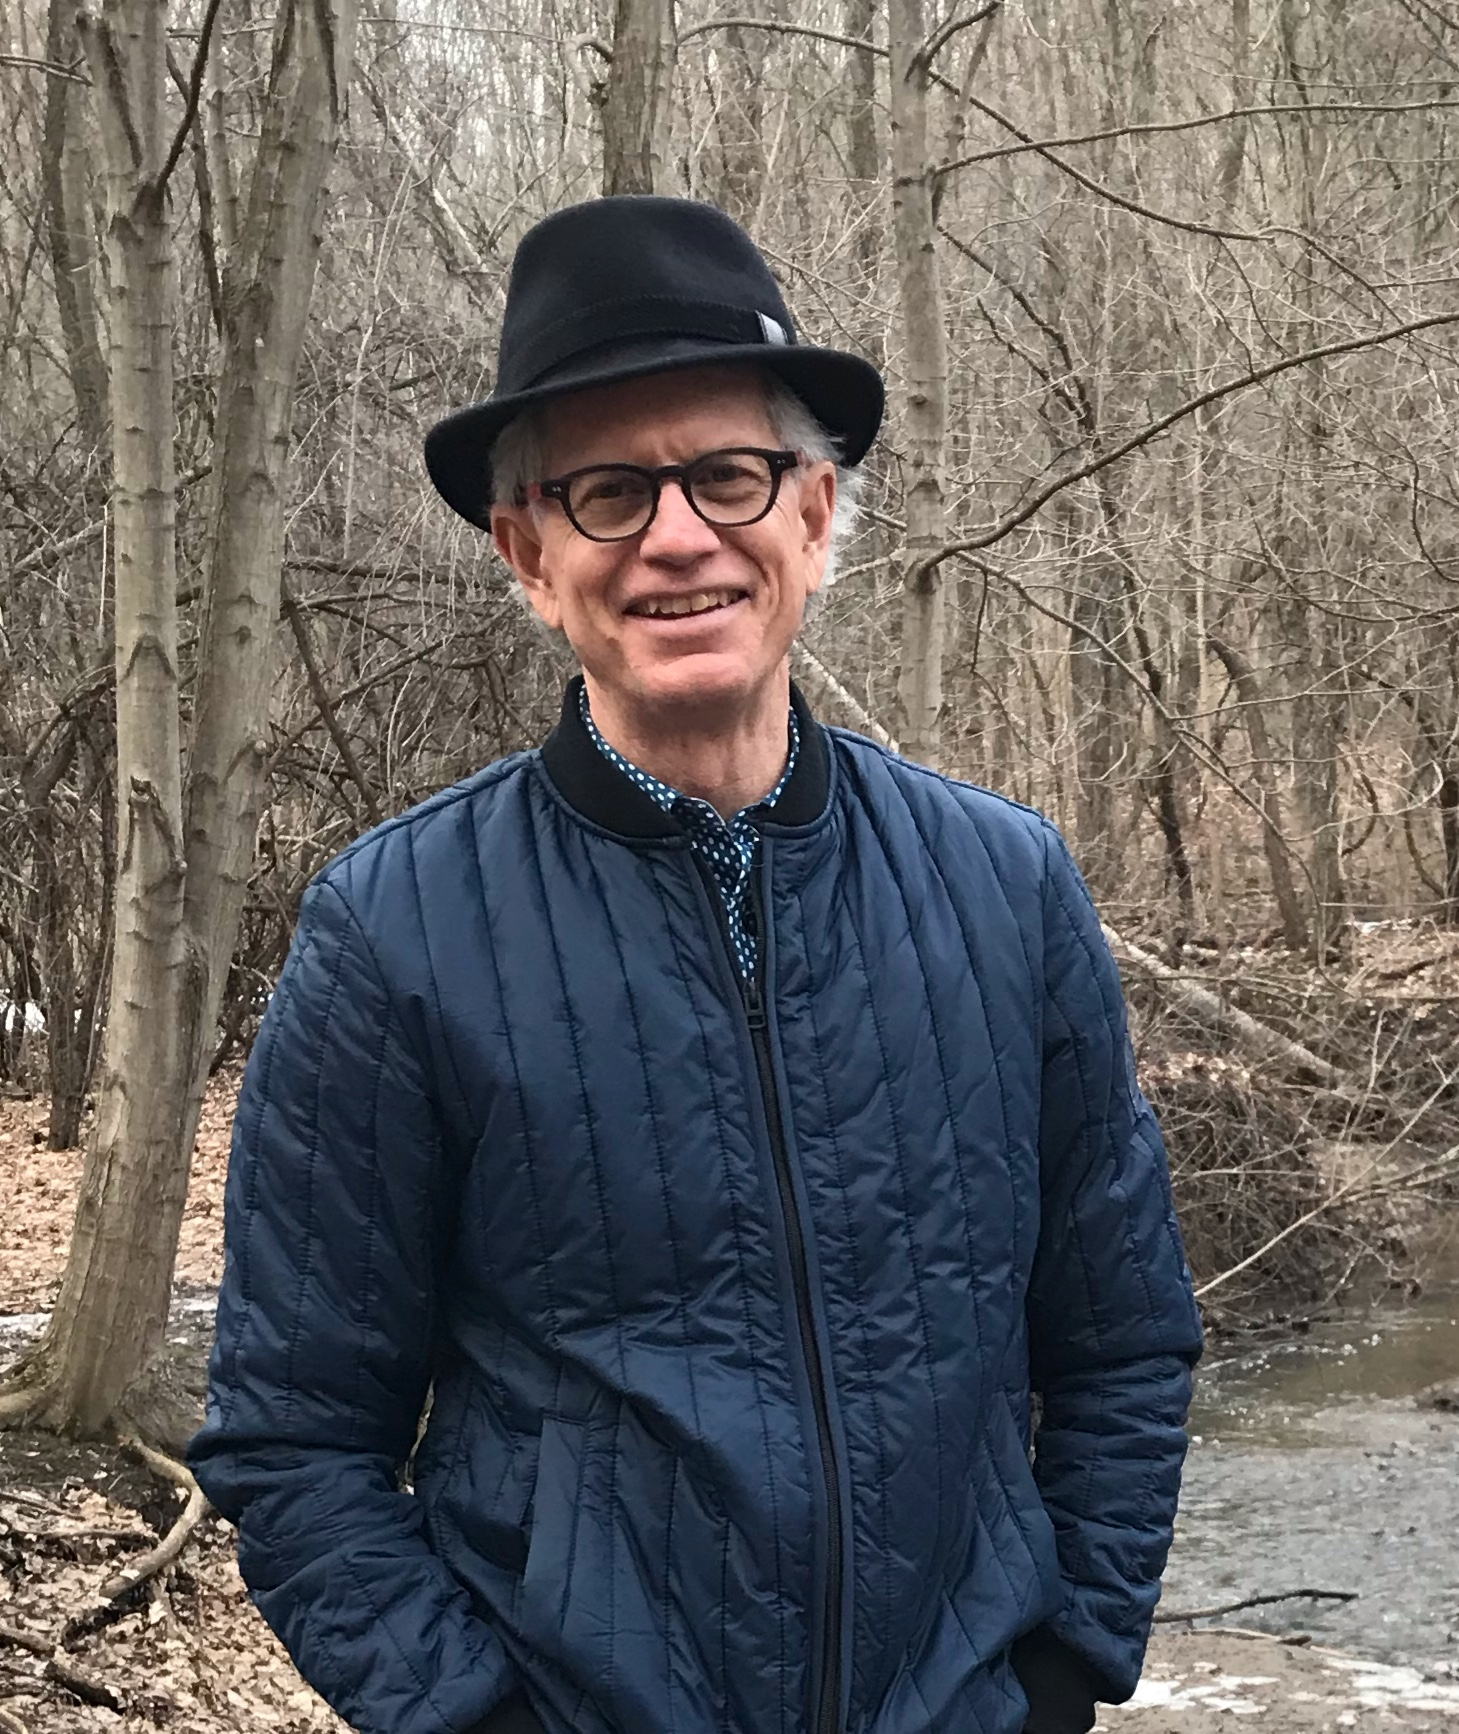 photograph of Daniel Coleman wearing a blue jacket and black hat, standing in front of barren trees in the winter.